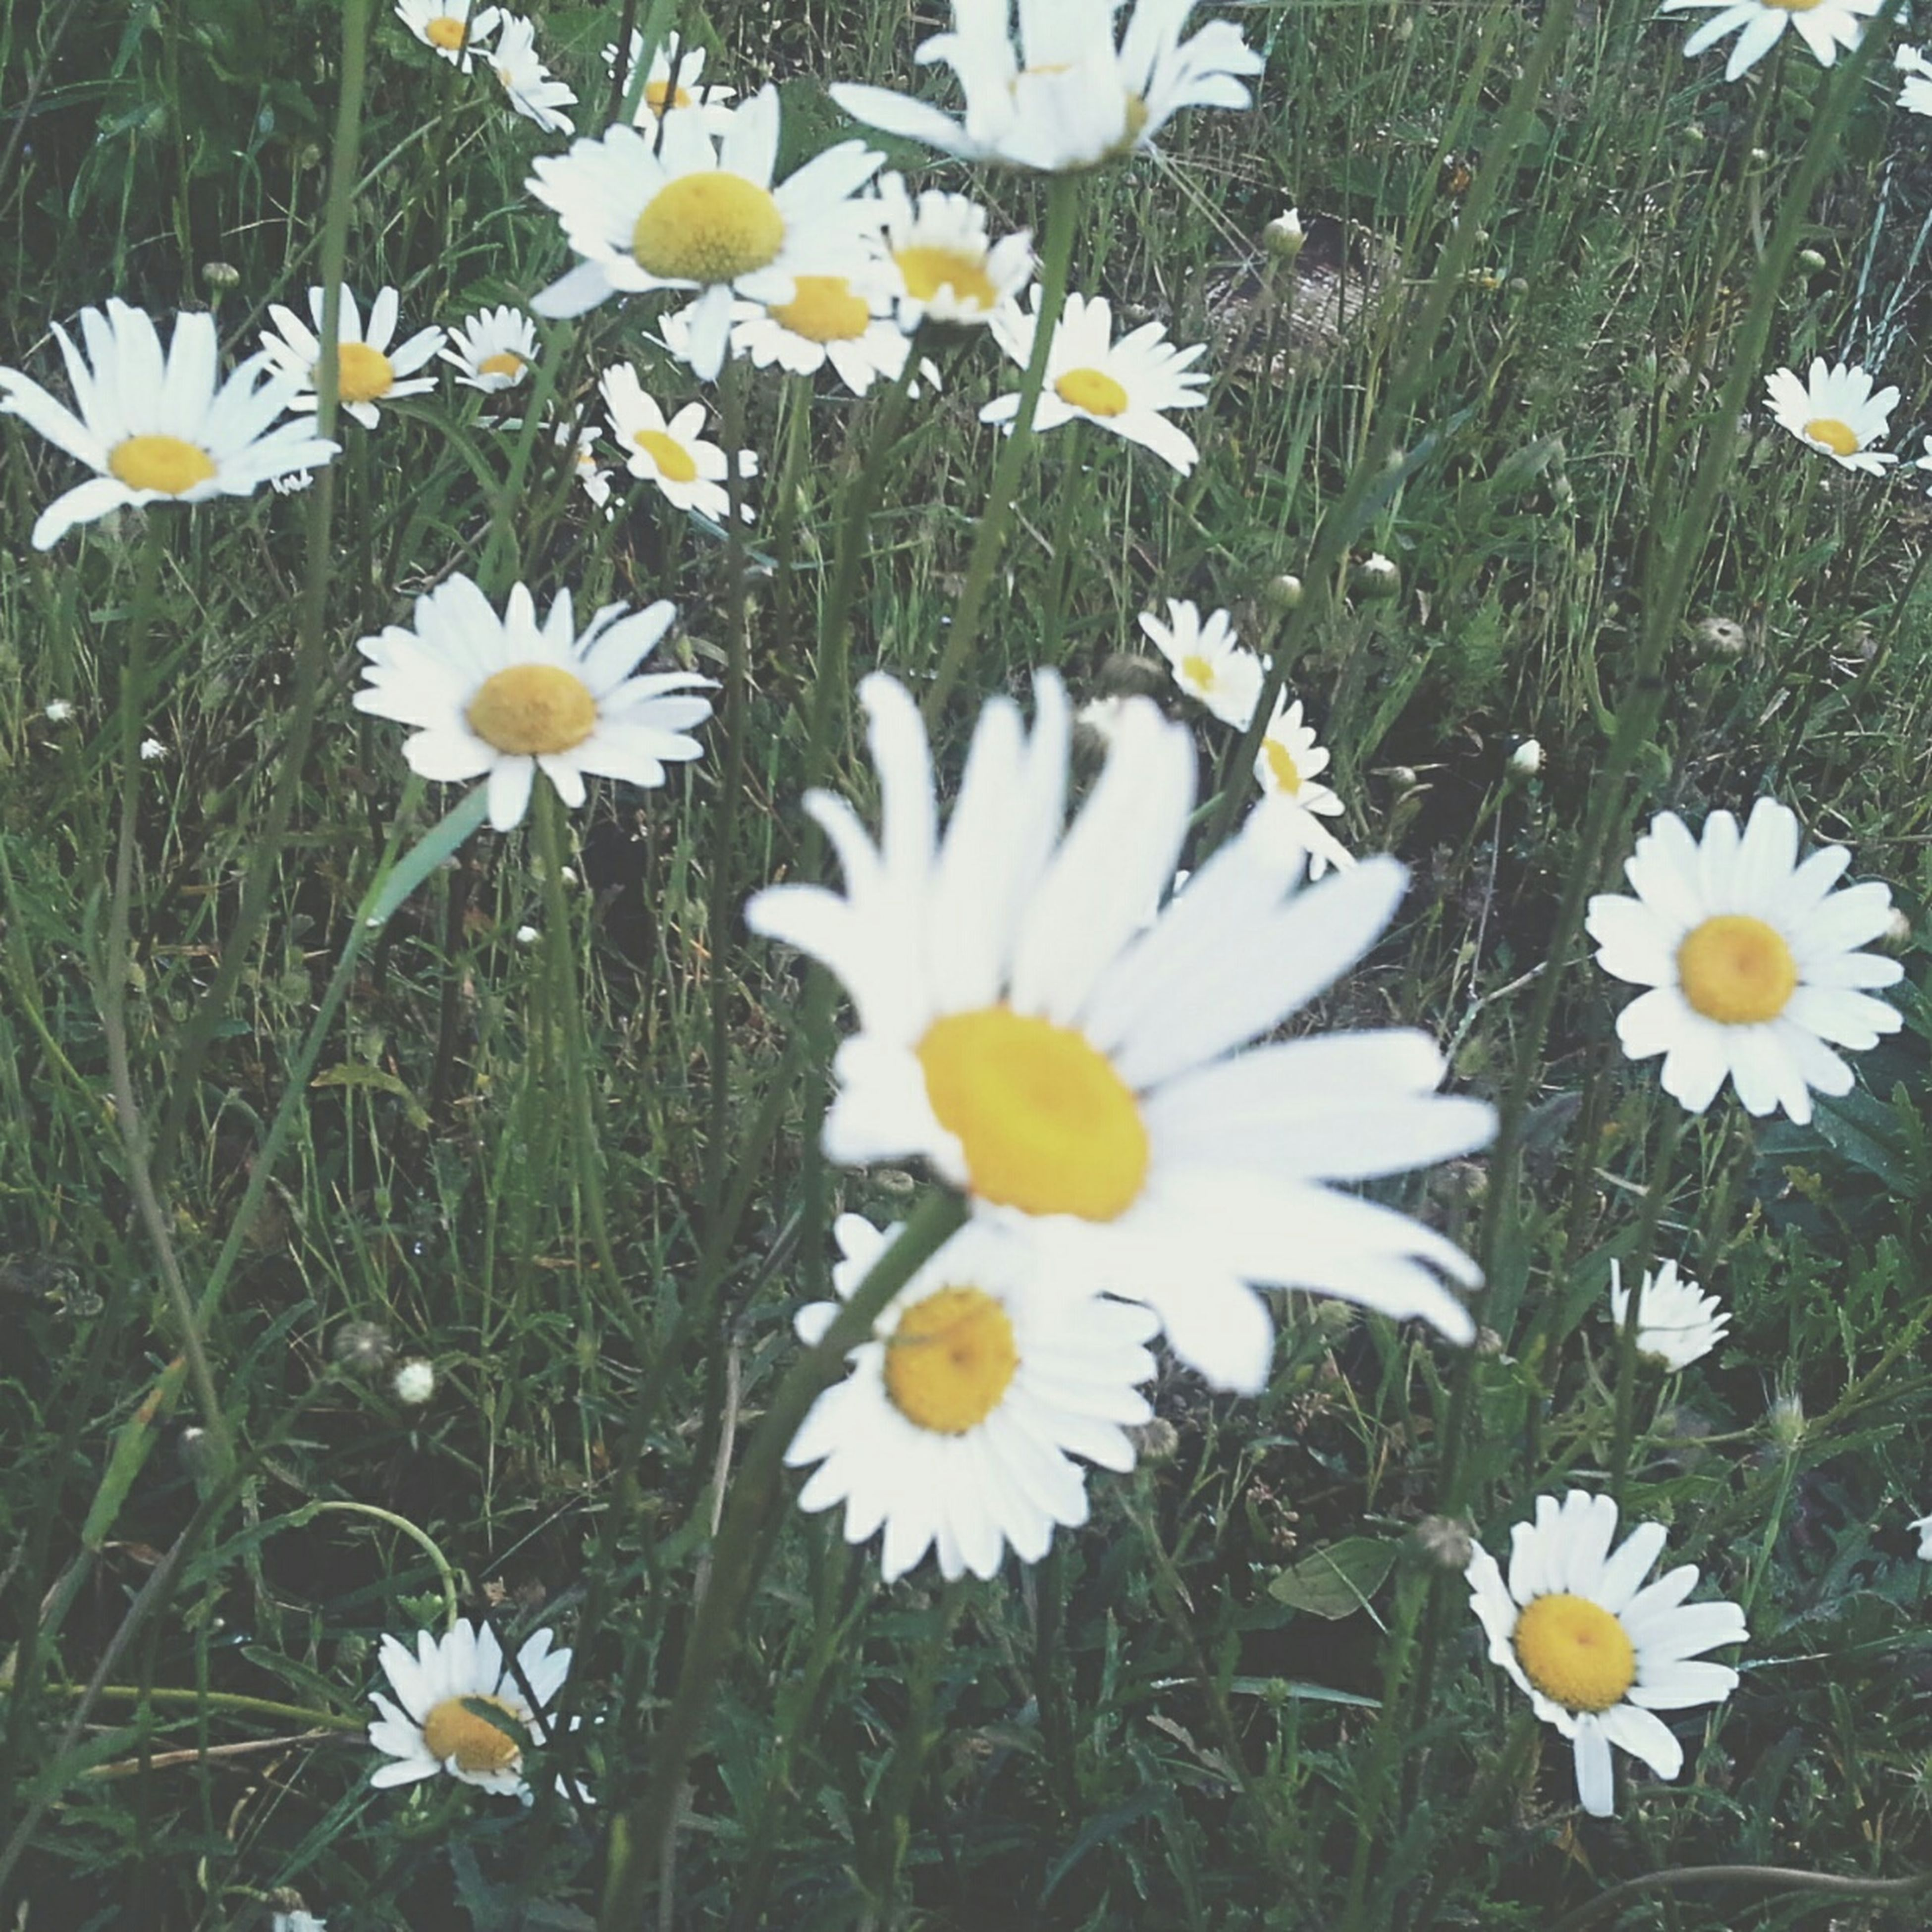 flower, freshness, petal, white color, fragility, daisy, growth, flower head, beauty in nature, blooming, field, nature, plant, pollen, yellow, high angle view, white, grass, stem, in bloom